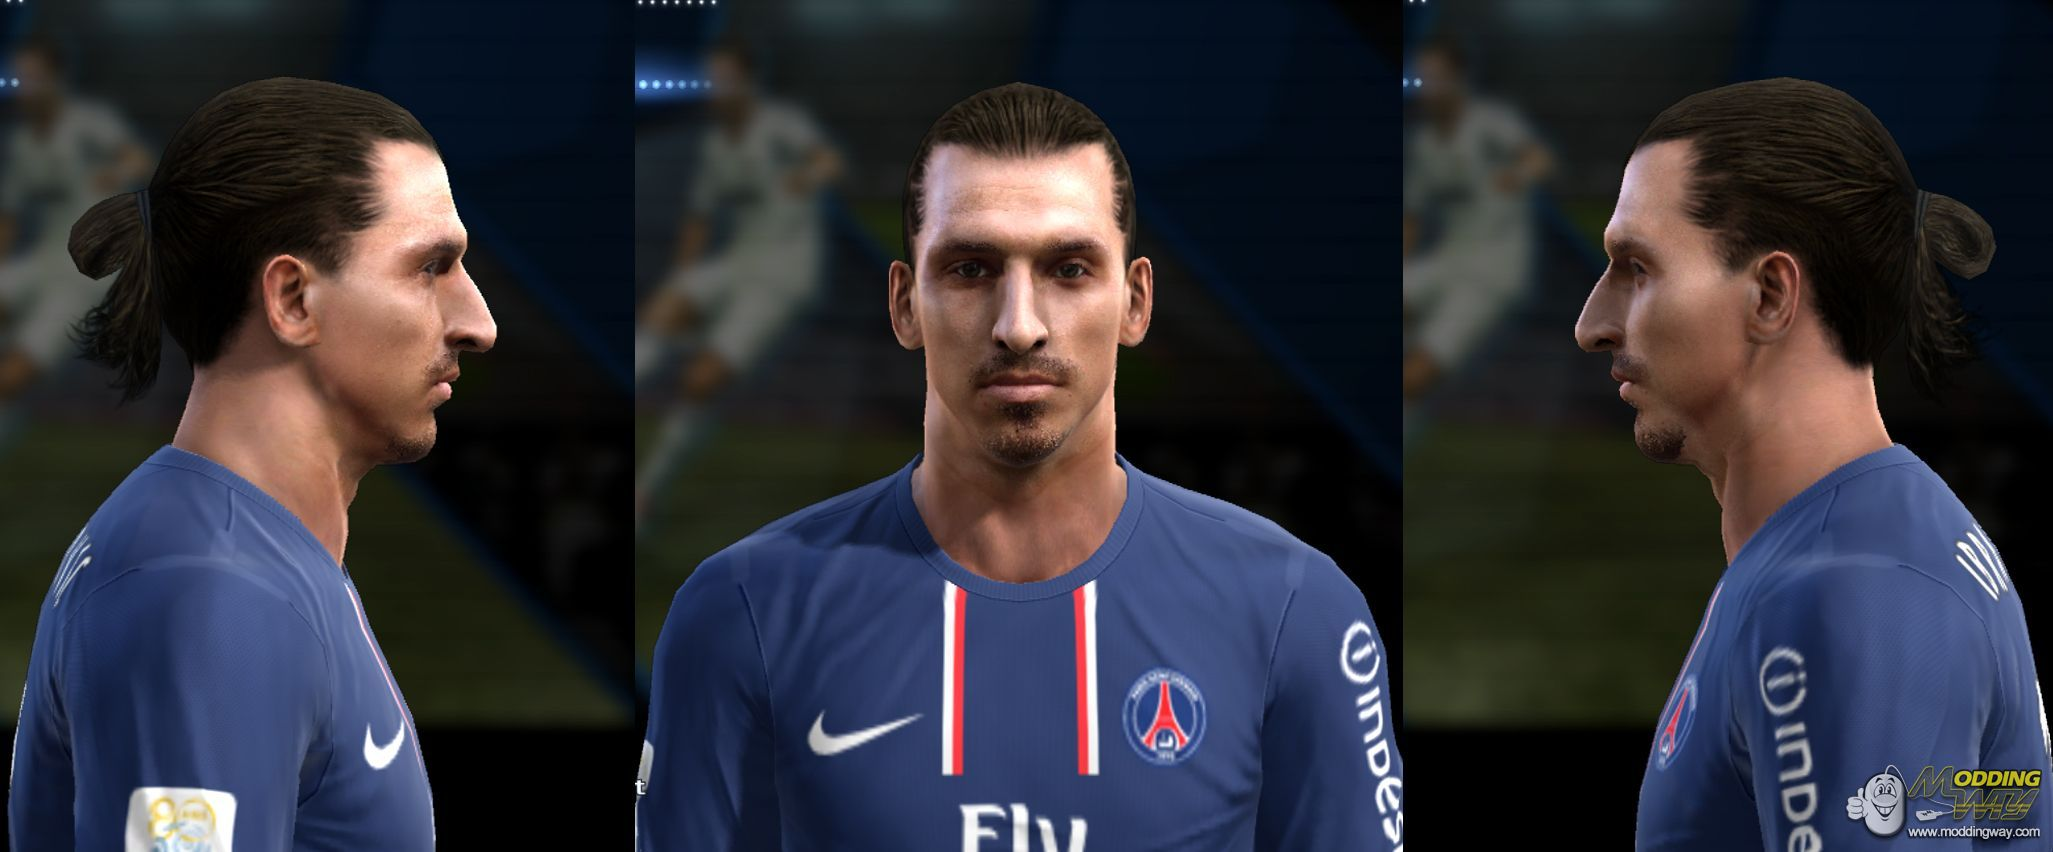 pro evolution soccer 2013 faces ibrahimovic hd face by forzamilan pro